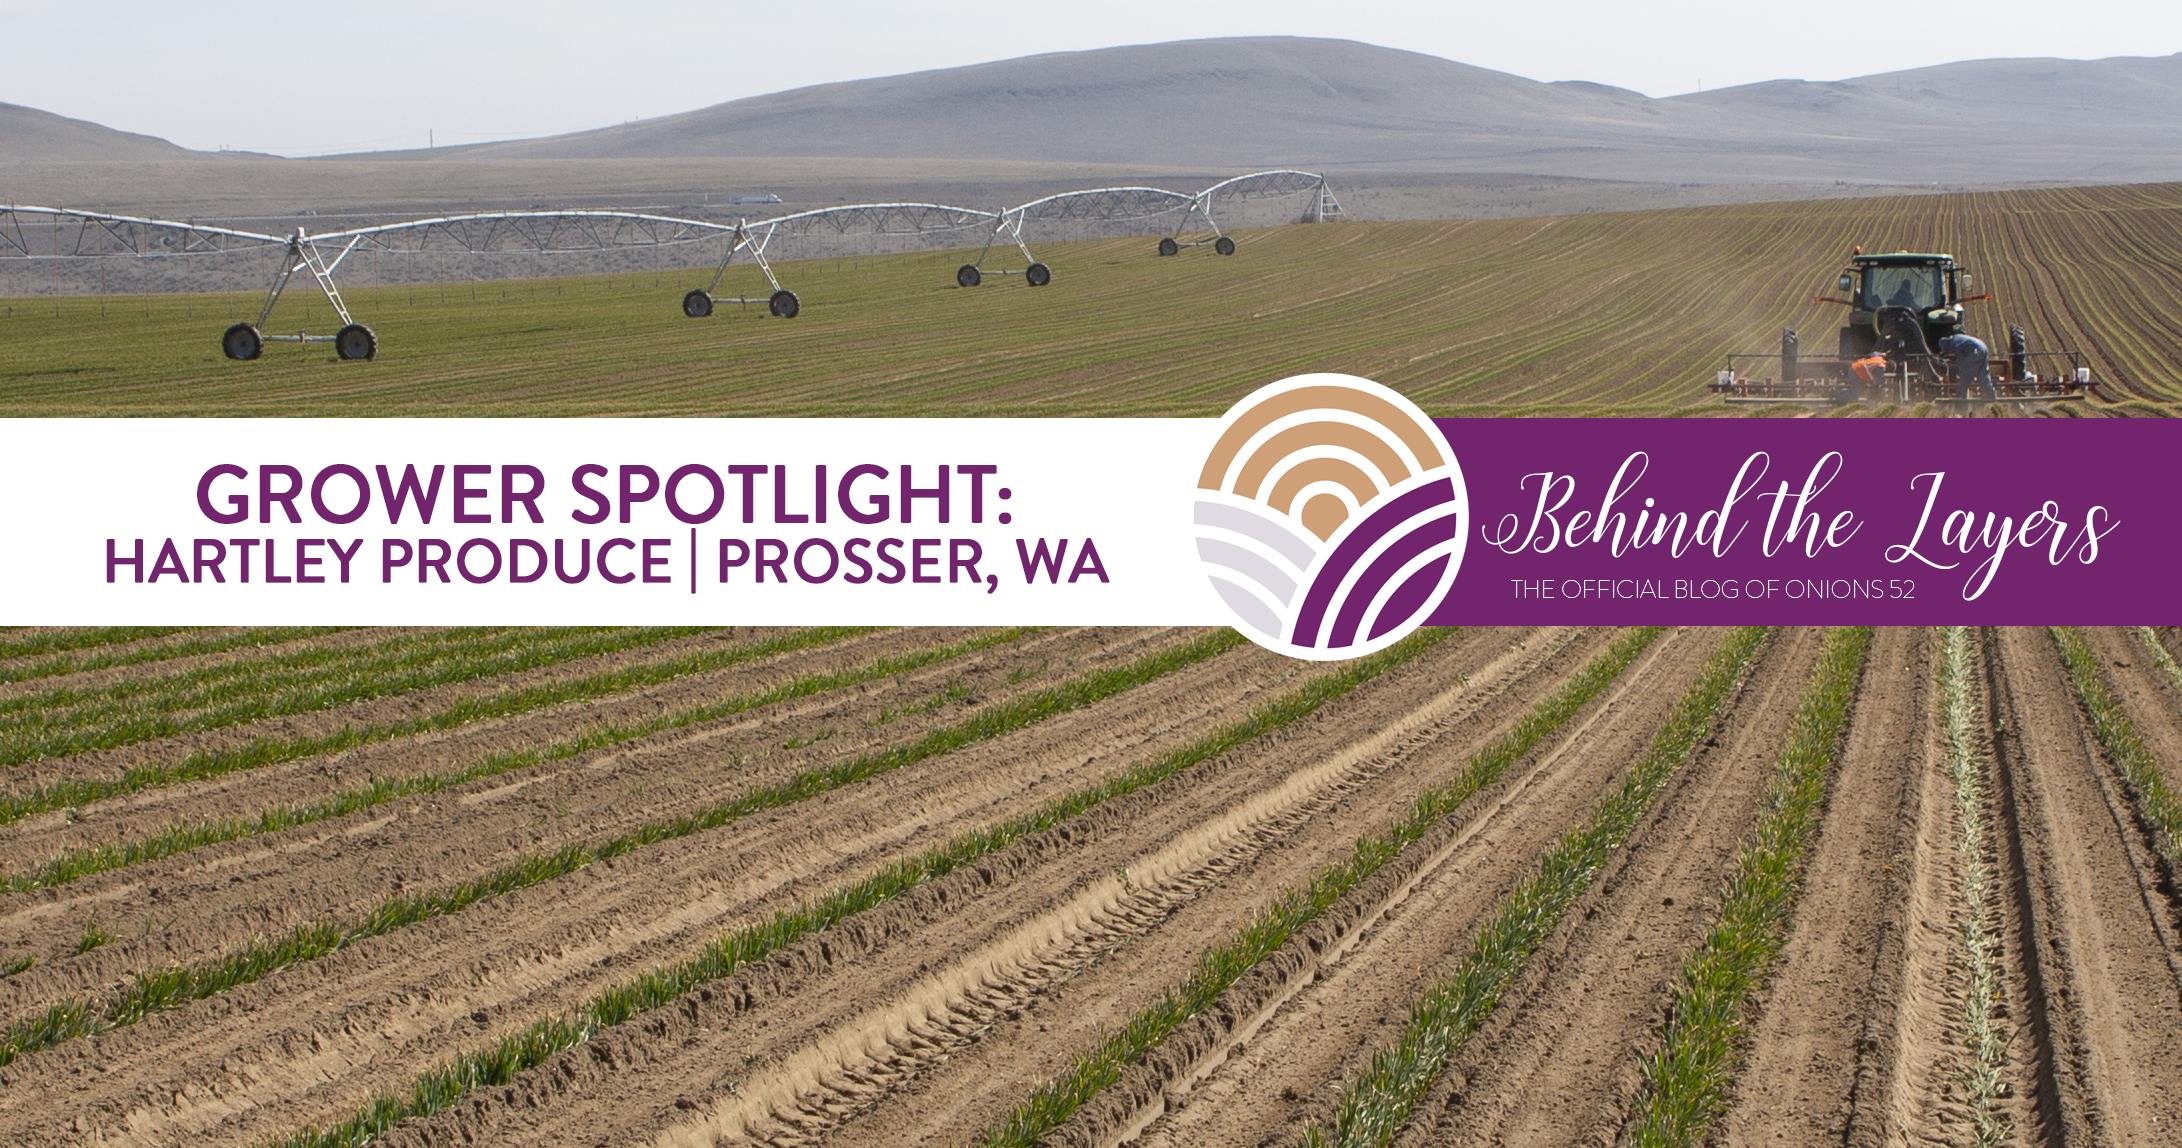 Grower Spotlight: Hartley Produce